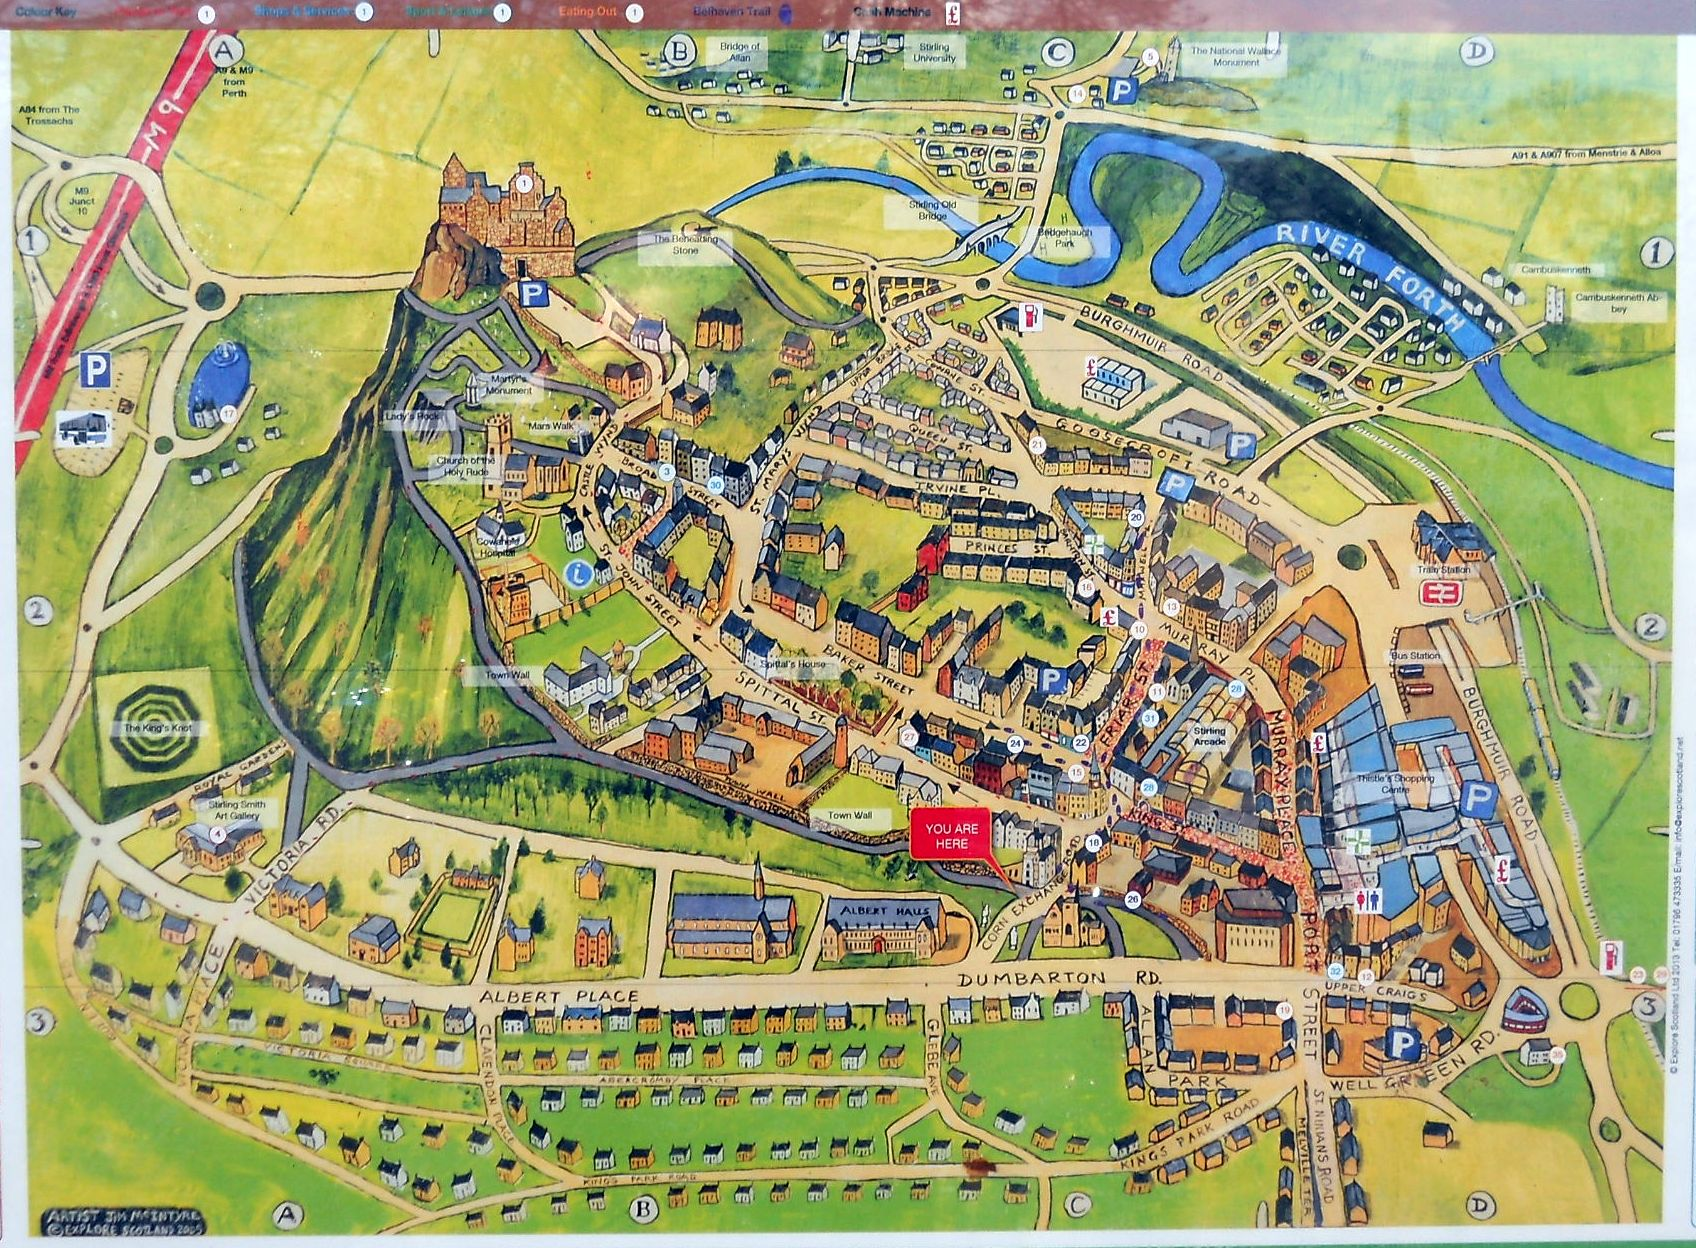 photographs and map of the historic stirling castle in central